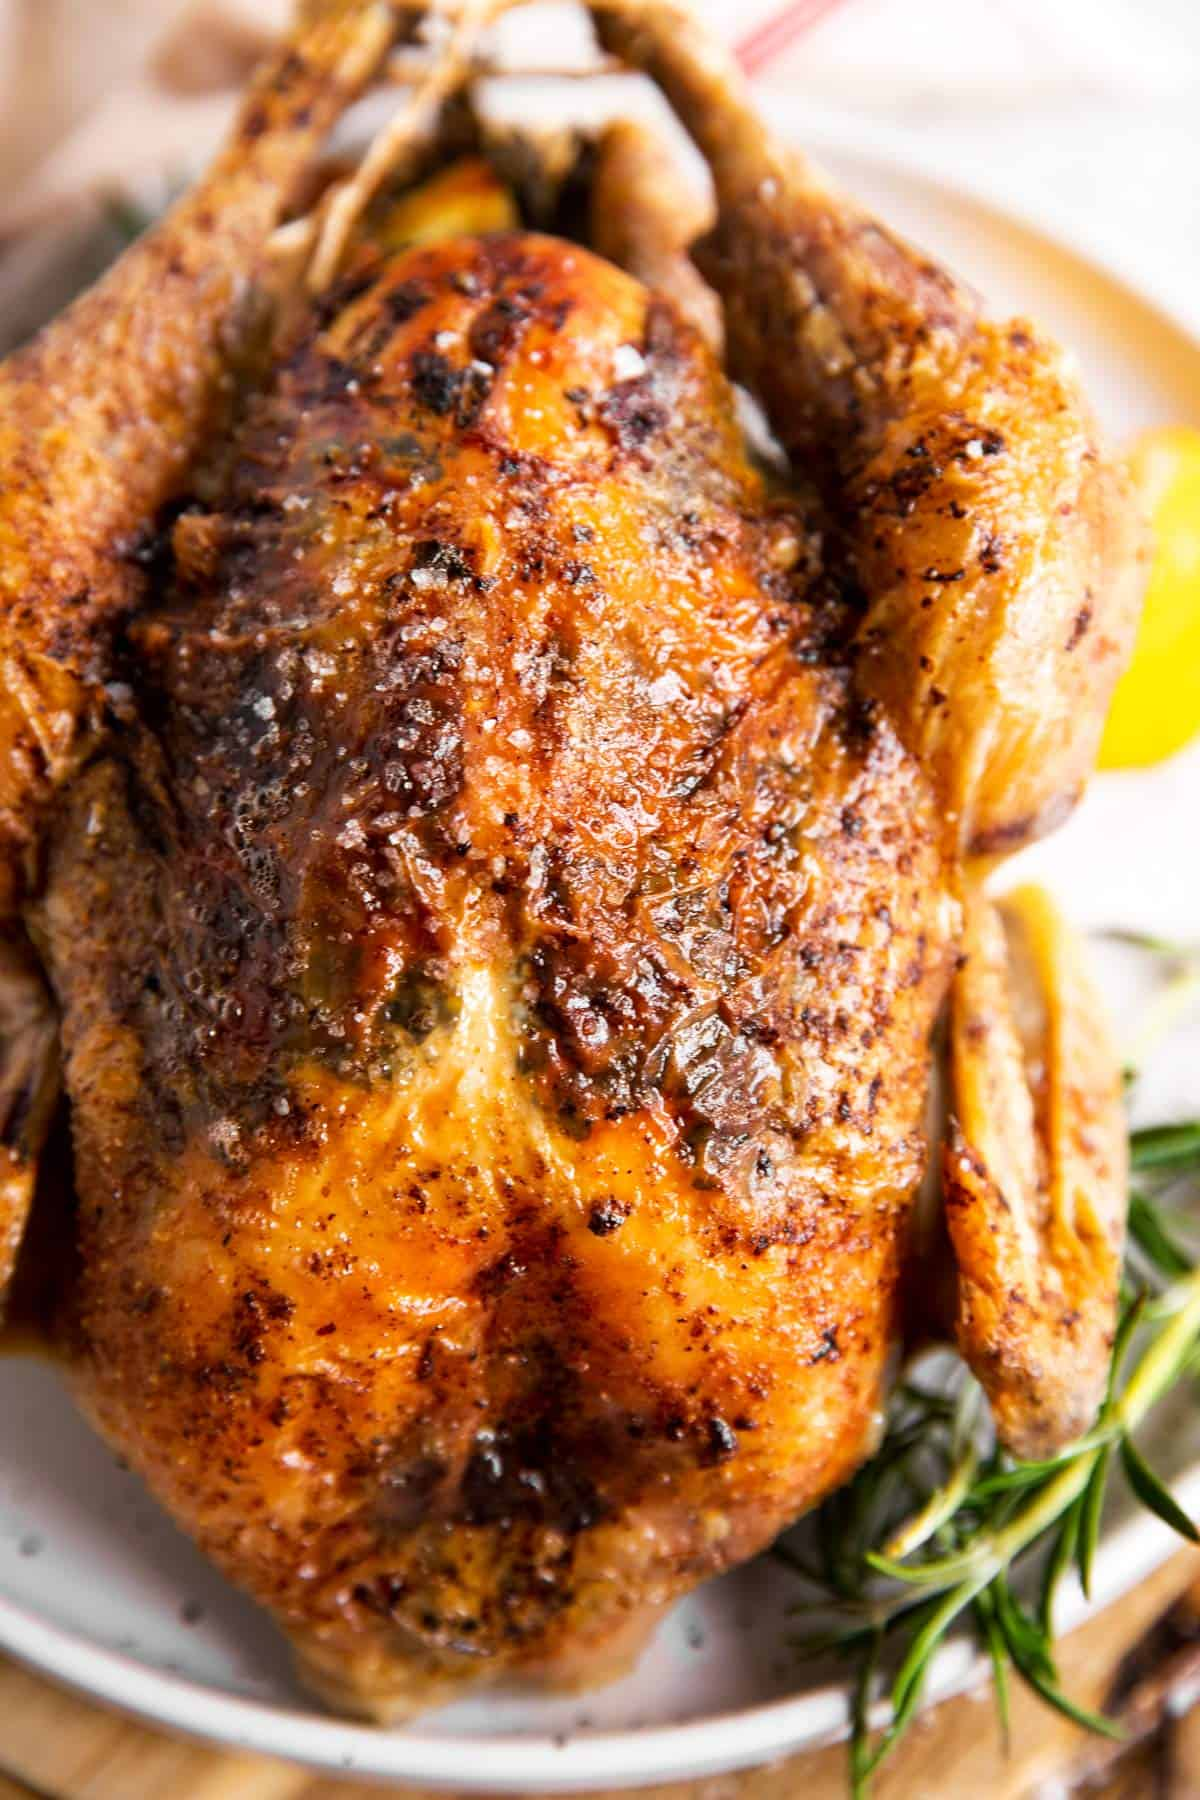 close up photo of a whole roasted chicken